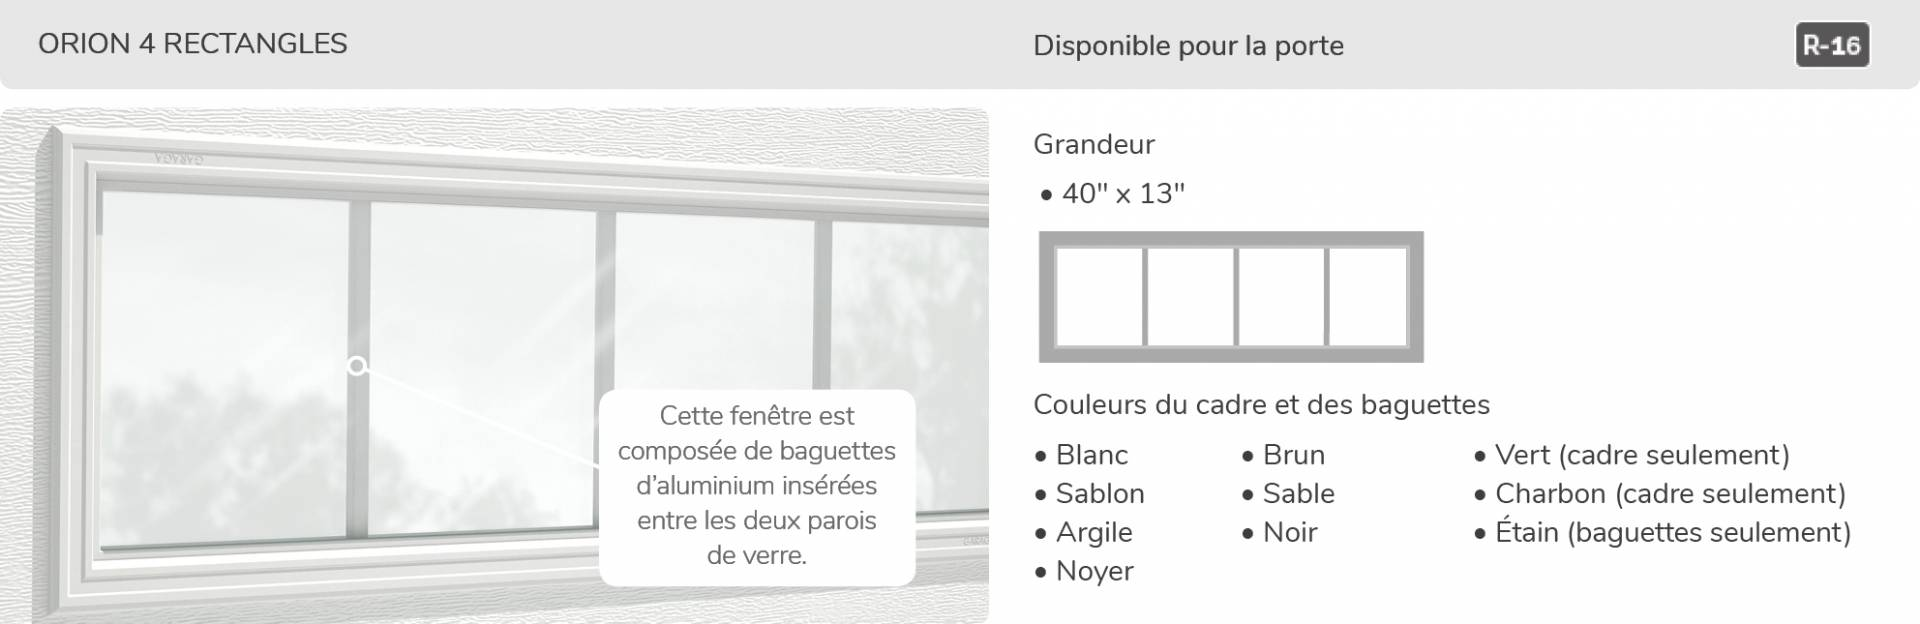 Orion 4 rectangles, 40' x 13', disponible pour la porte R-16